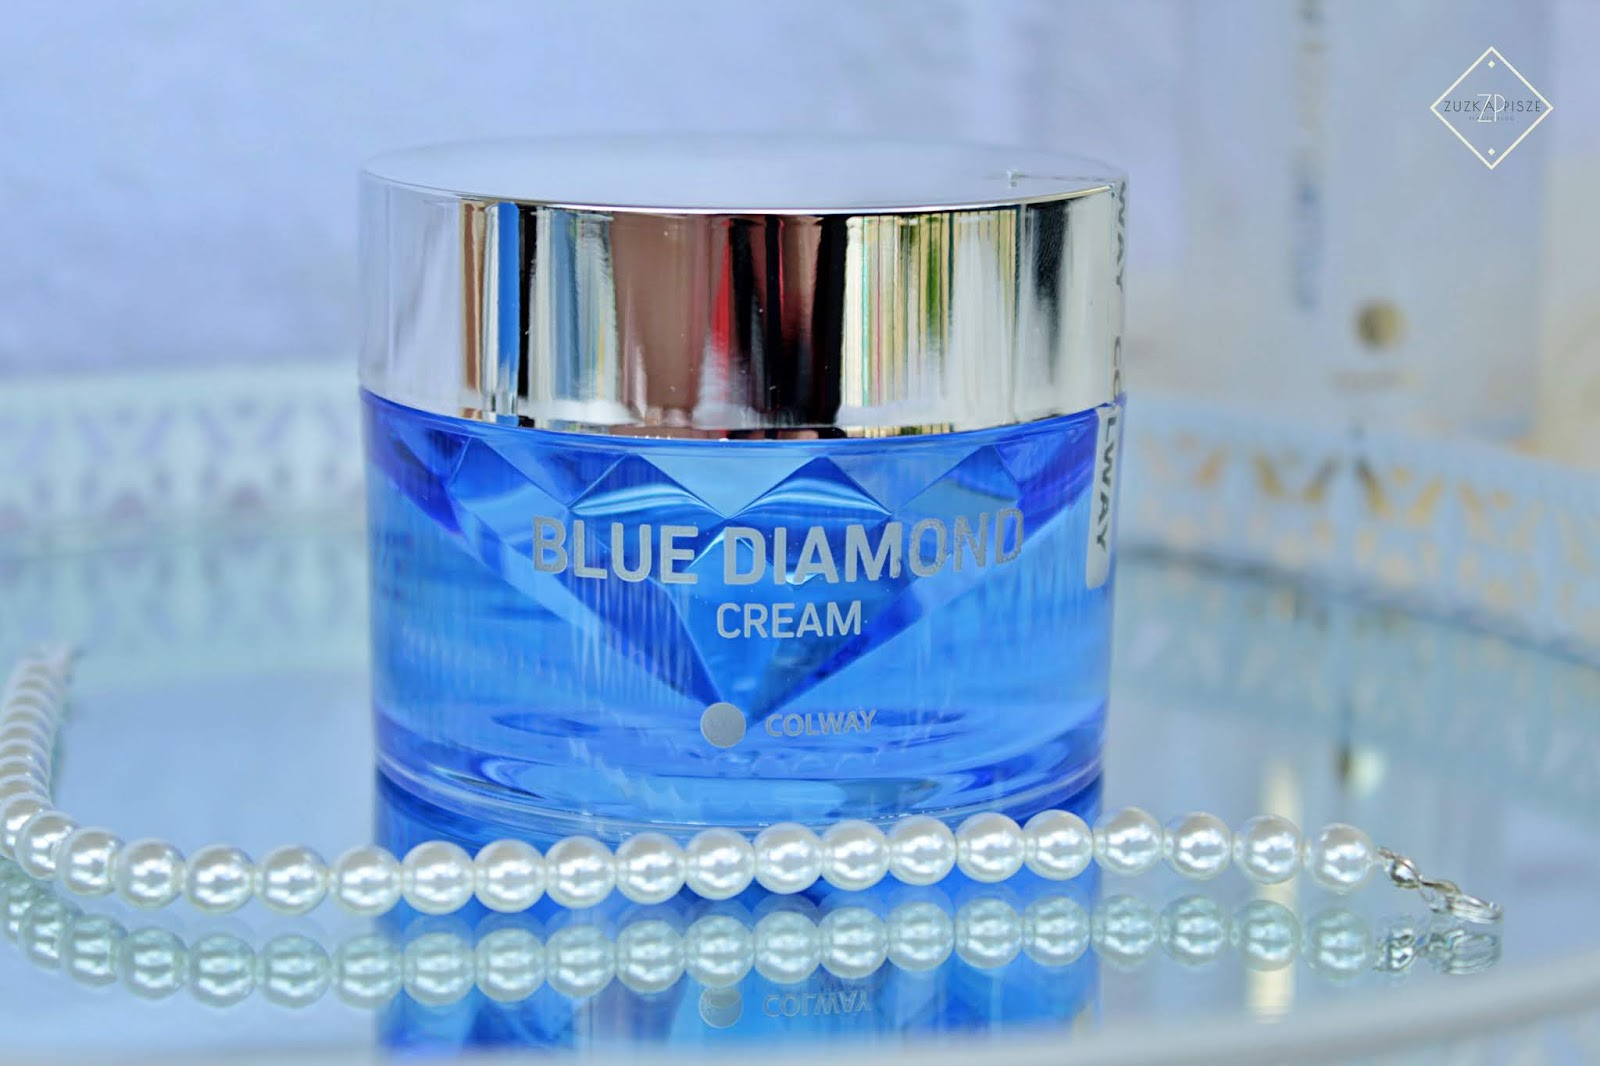 BLUE DIAMOND CREAM Colway – bestsellerowy krem antiage